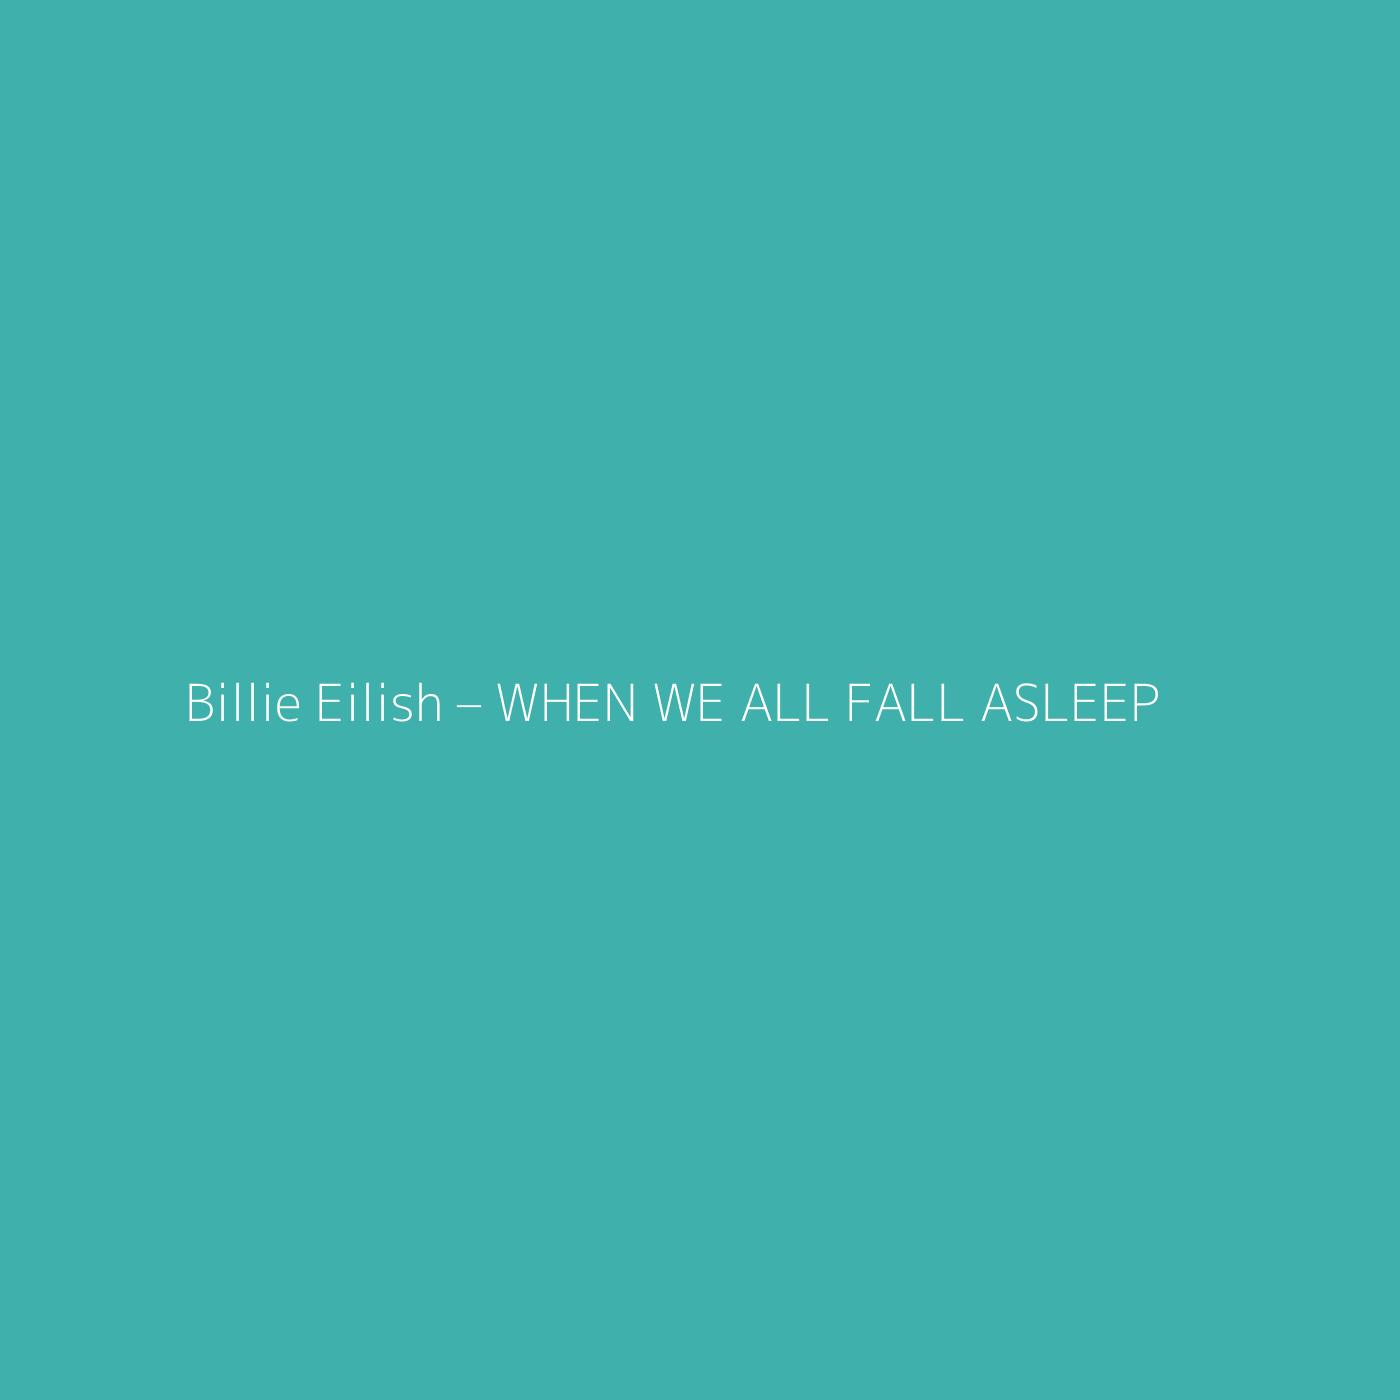 Billie Eilish – WHEN WE ALL FALL ASLEEP